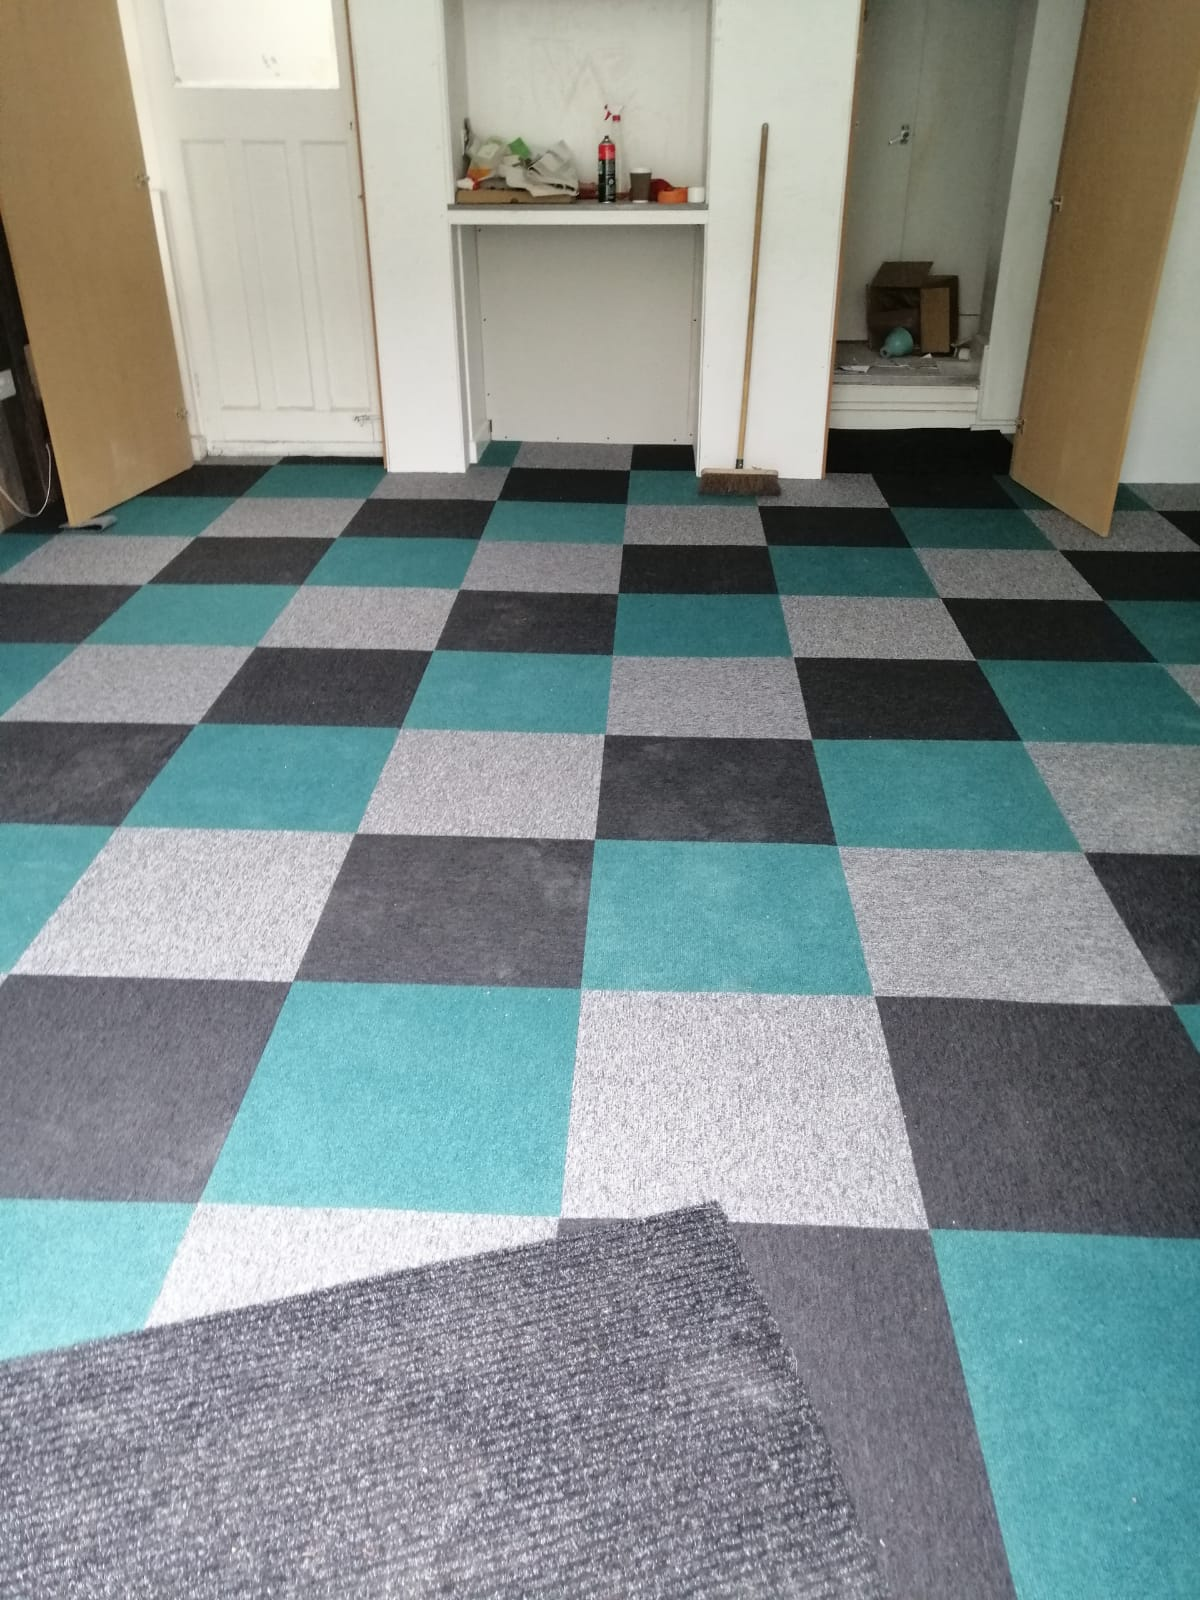 Carpet tiles for a newly fitted room by Techflooring